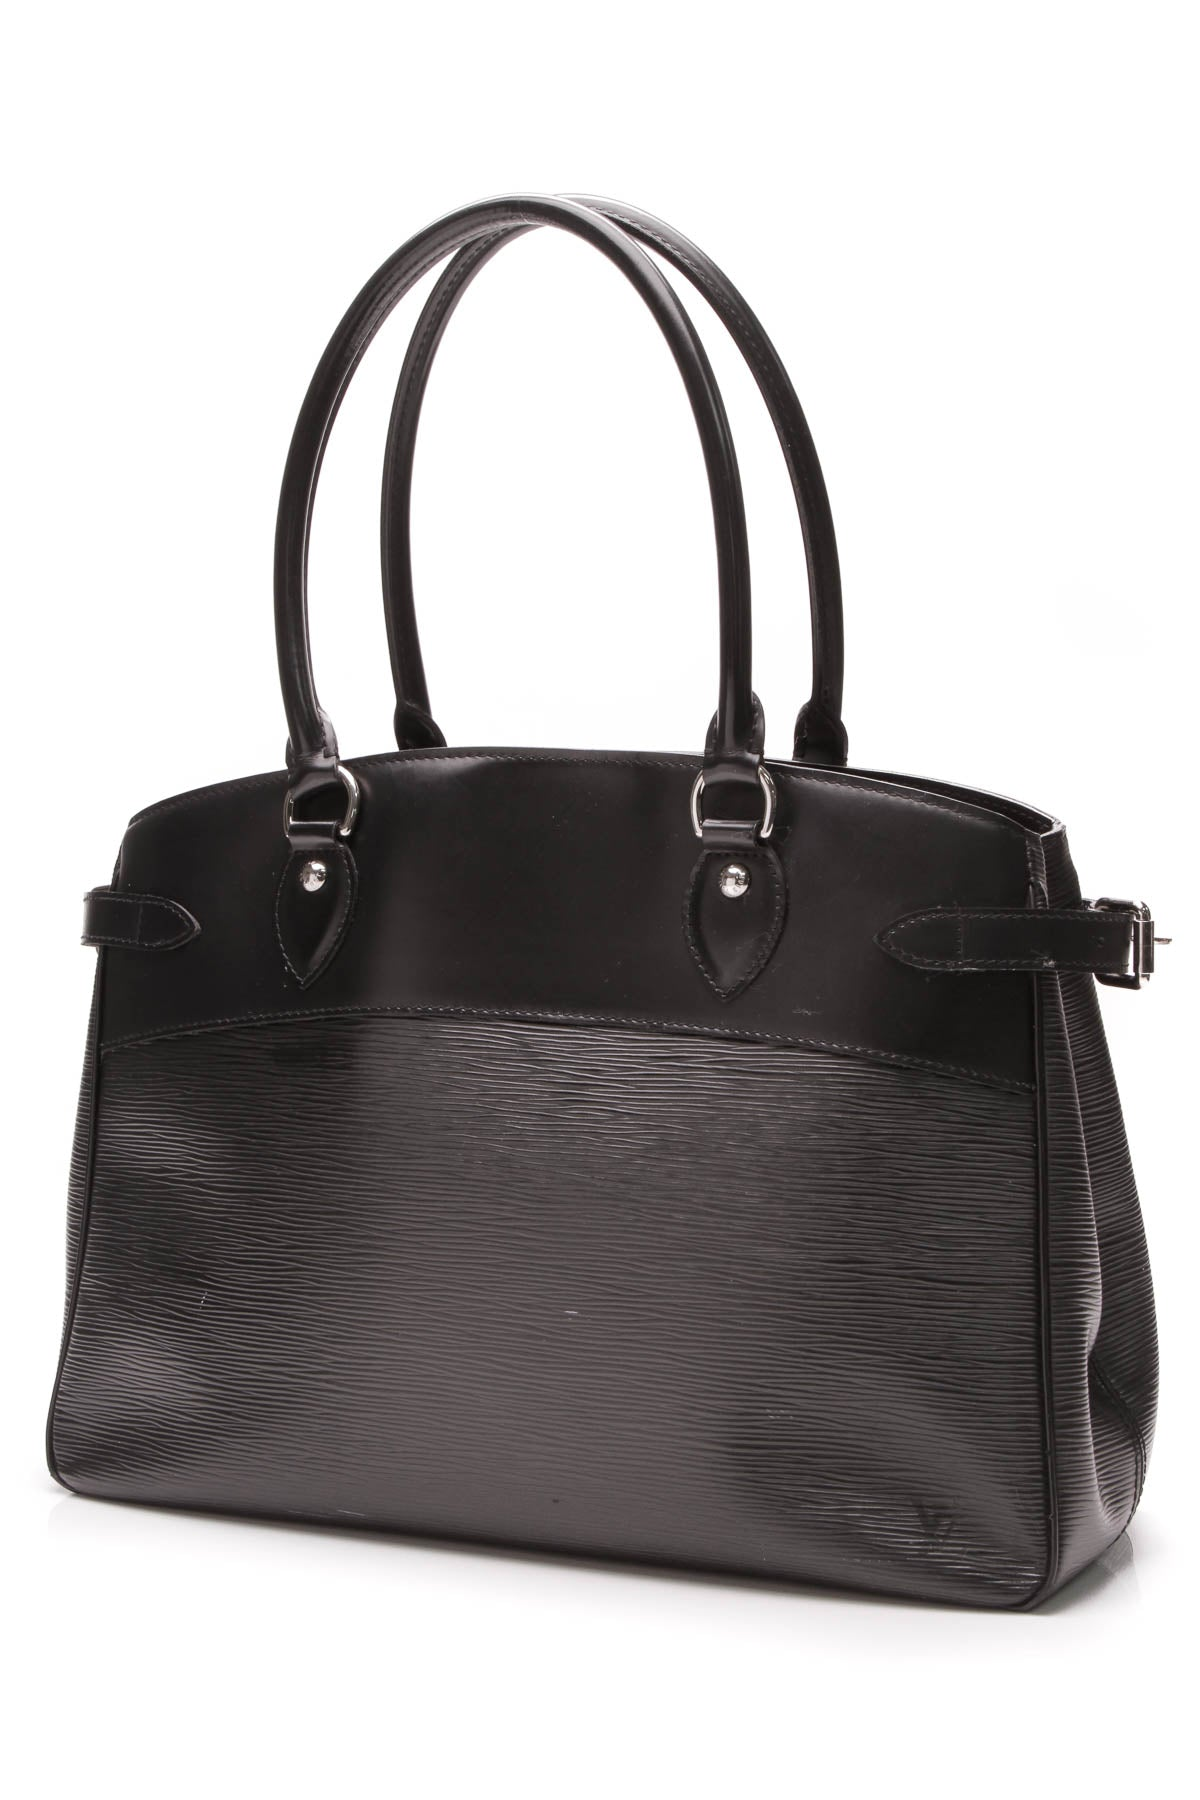 708393bcb77 Shop authentic luxury Bags - Couture USA